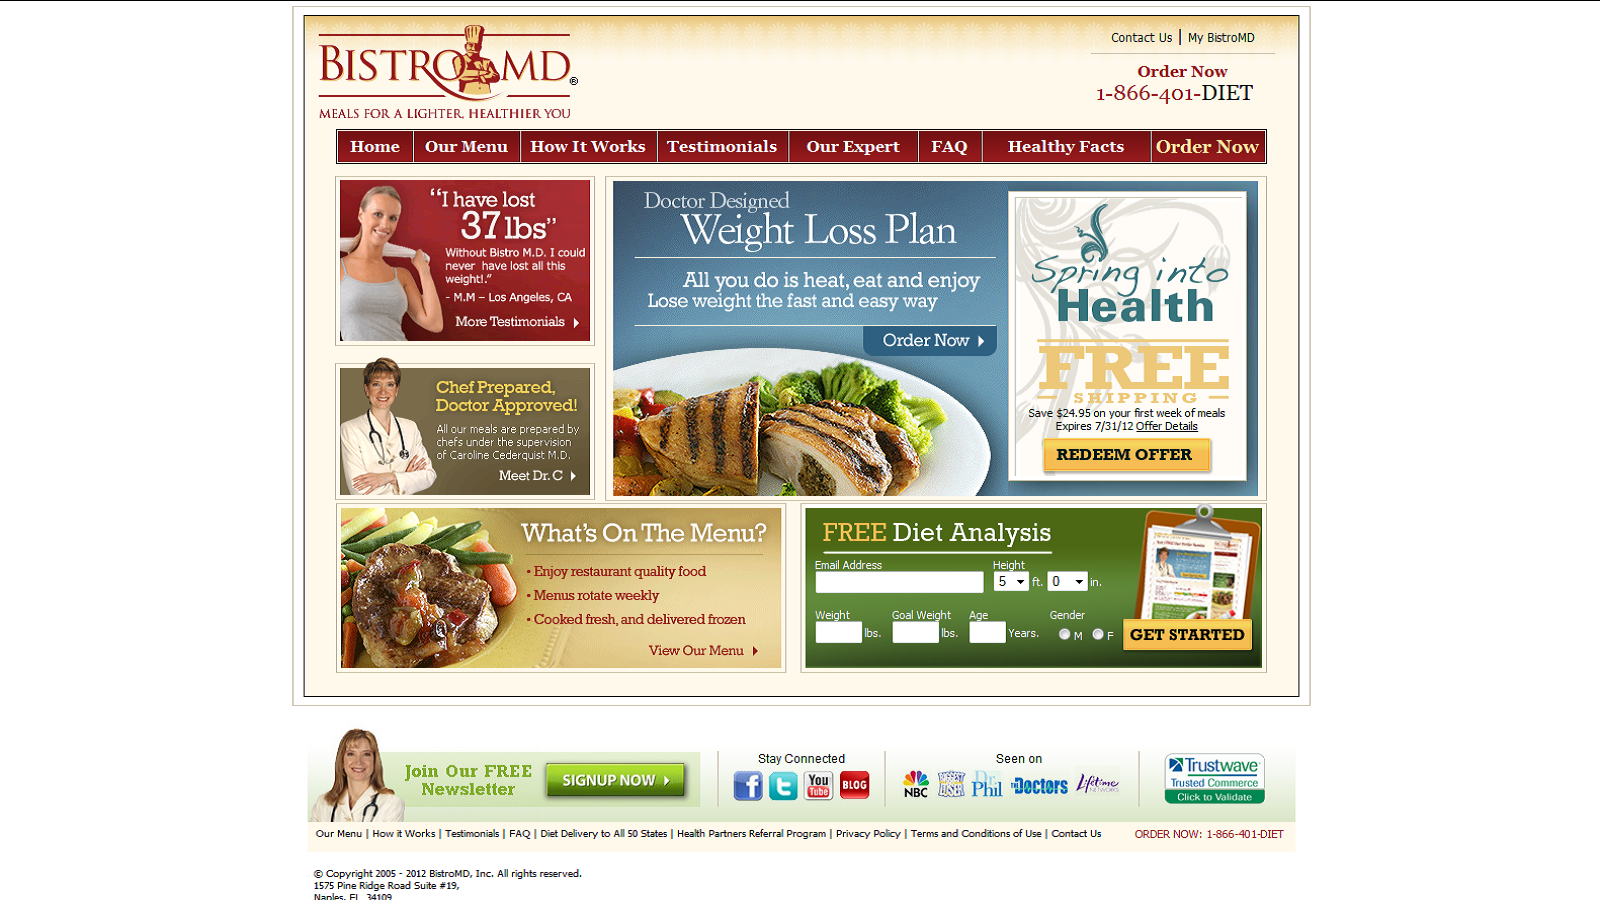 Bistro MD Coupons & Promo Codes